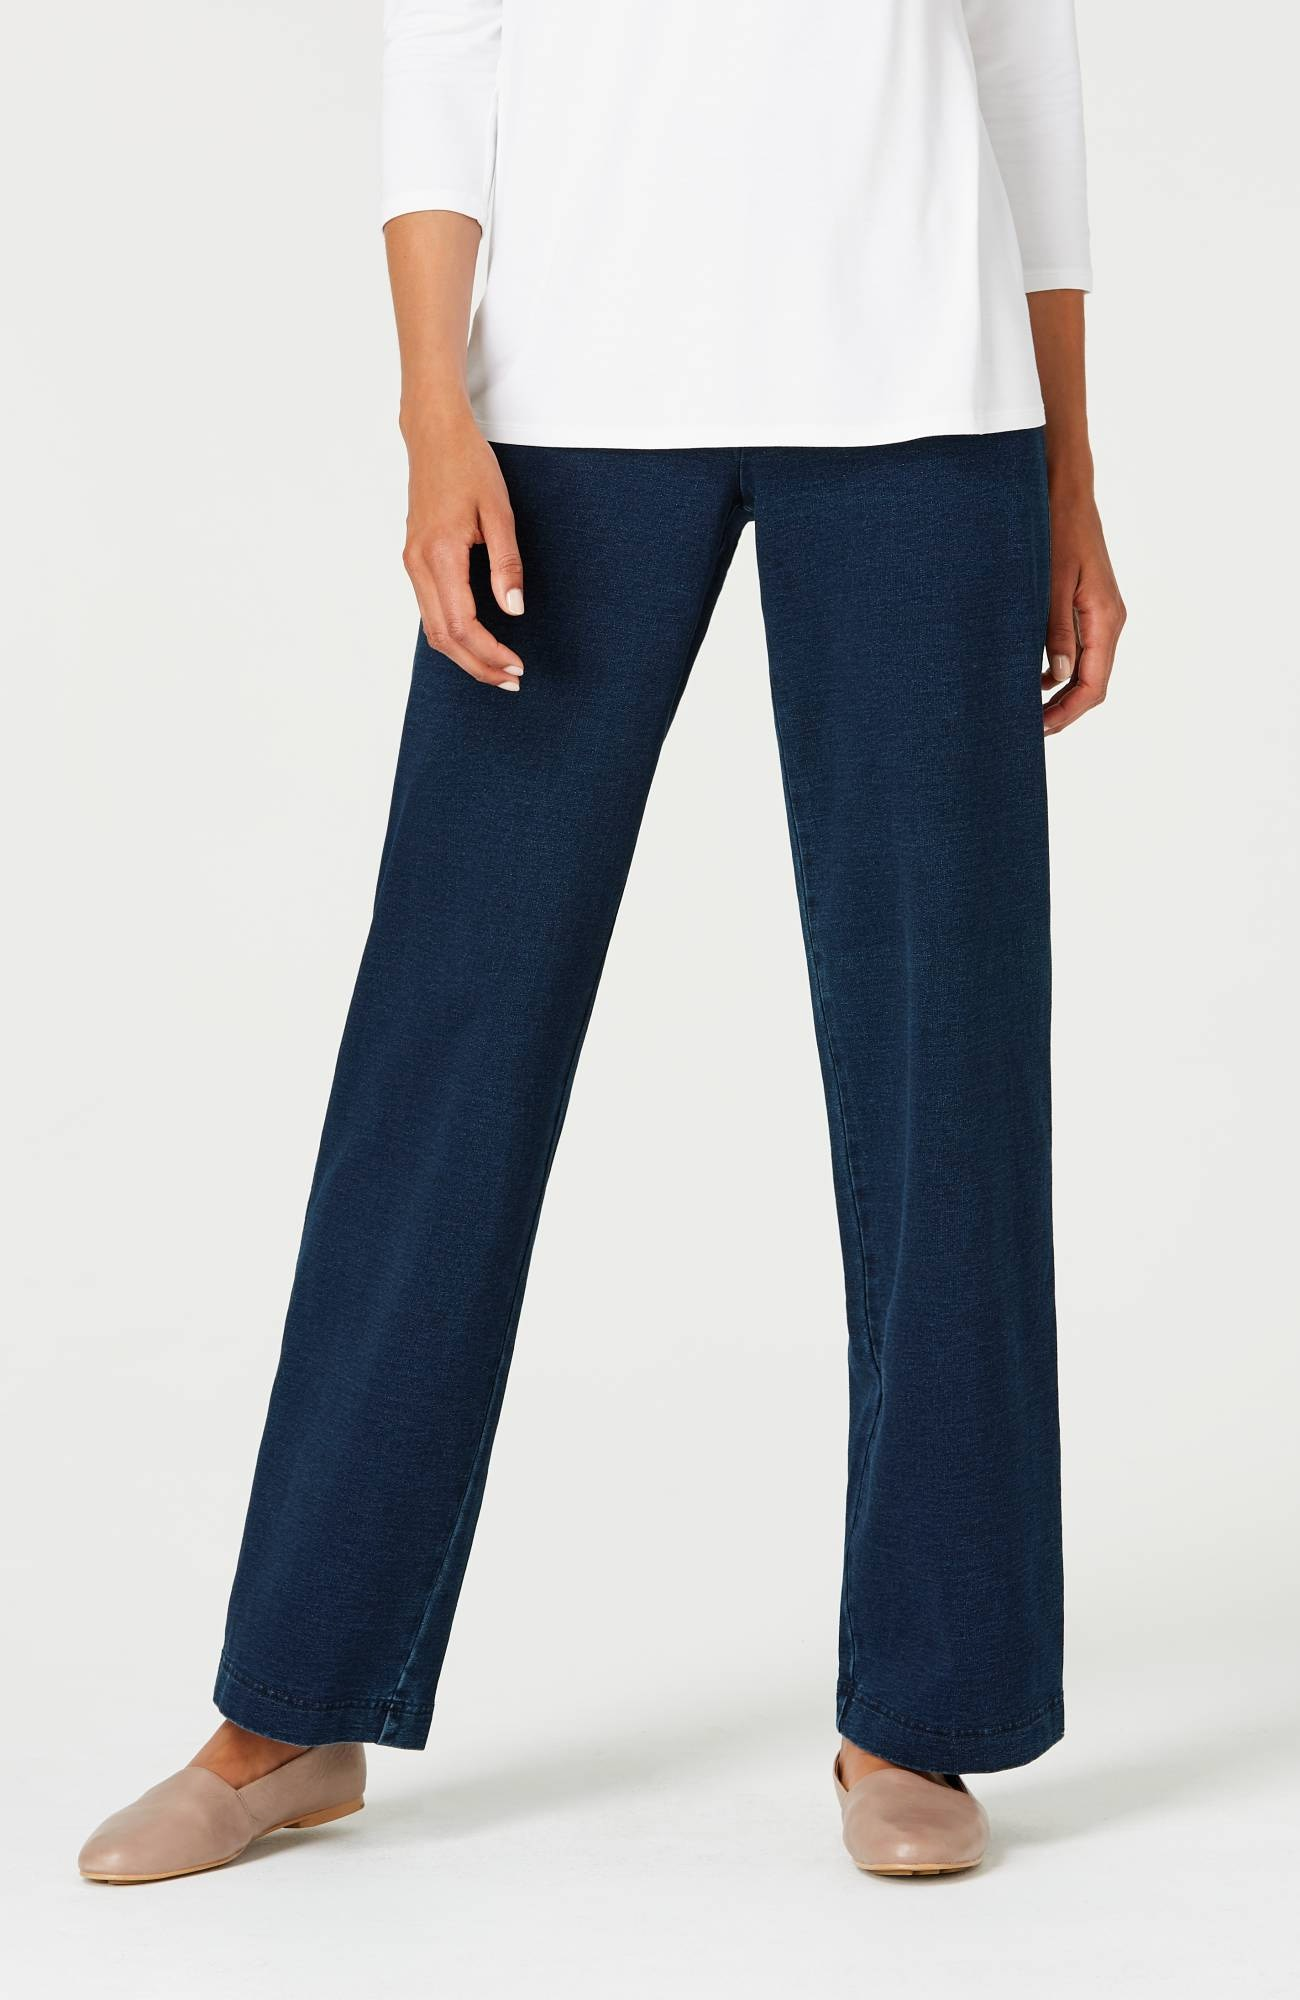 Pure Jill indigo wide-leg knit pants